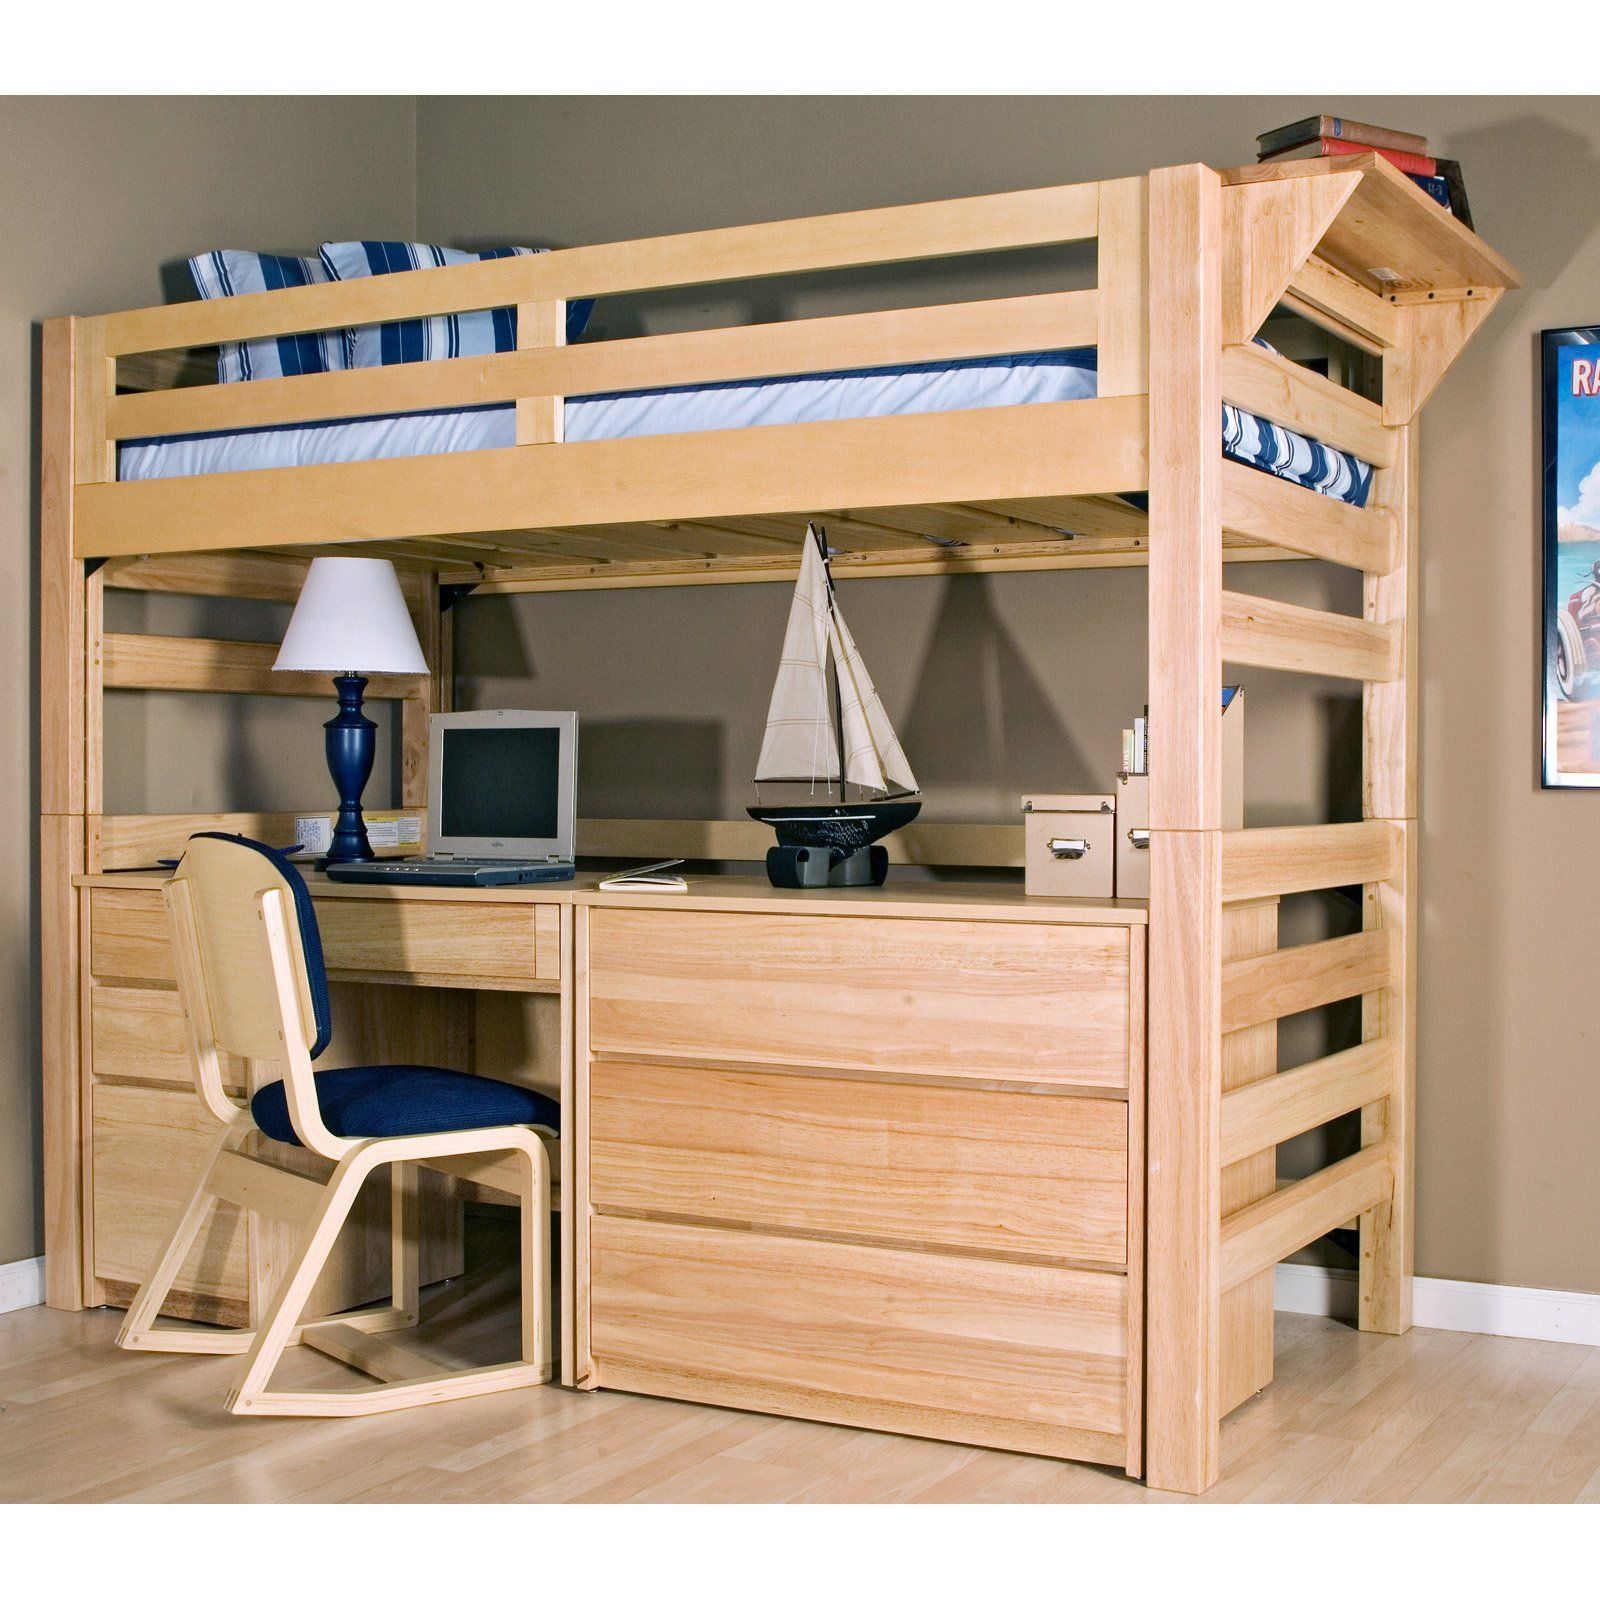 Have to have it graduate series open twin xl loft bed kids decor